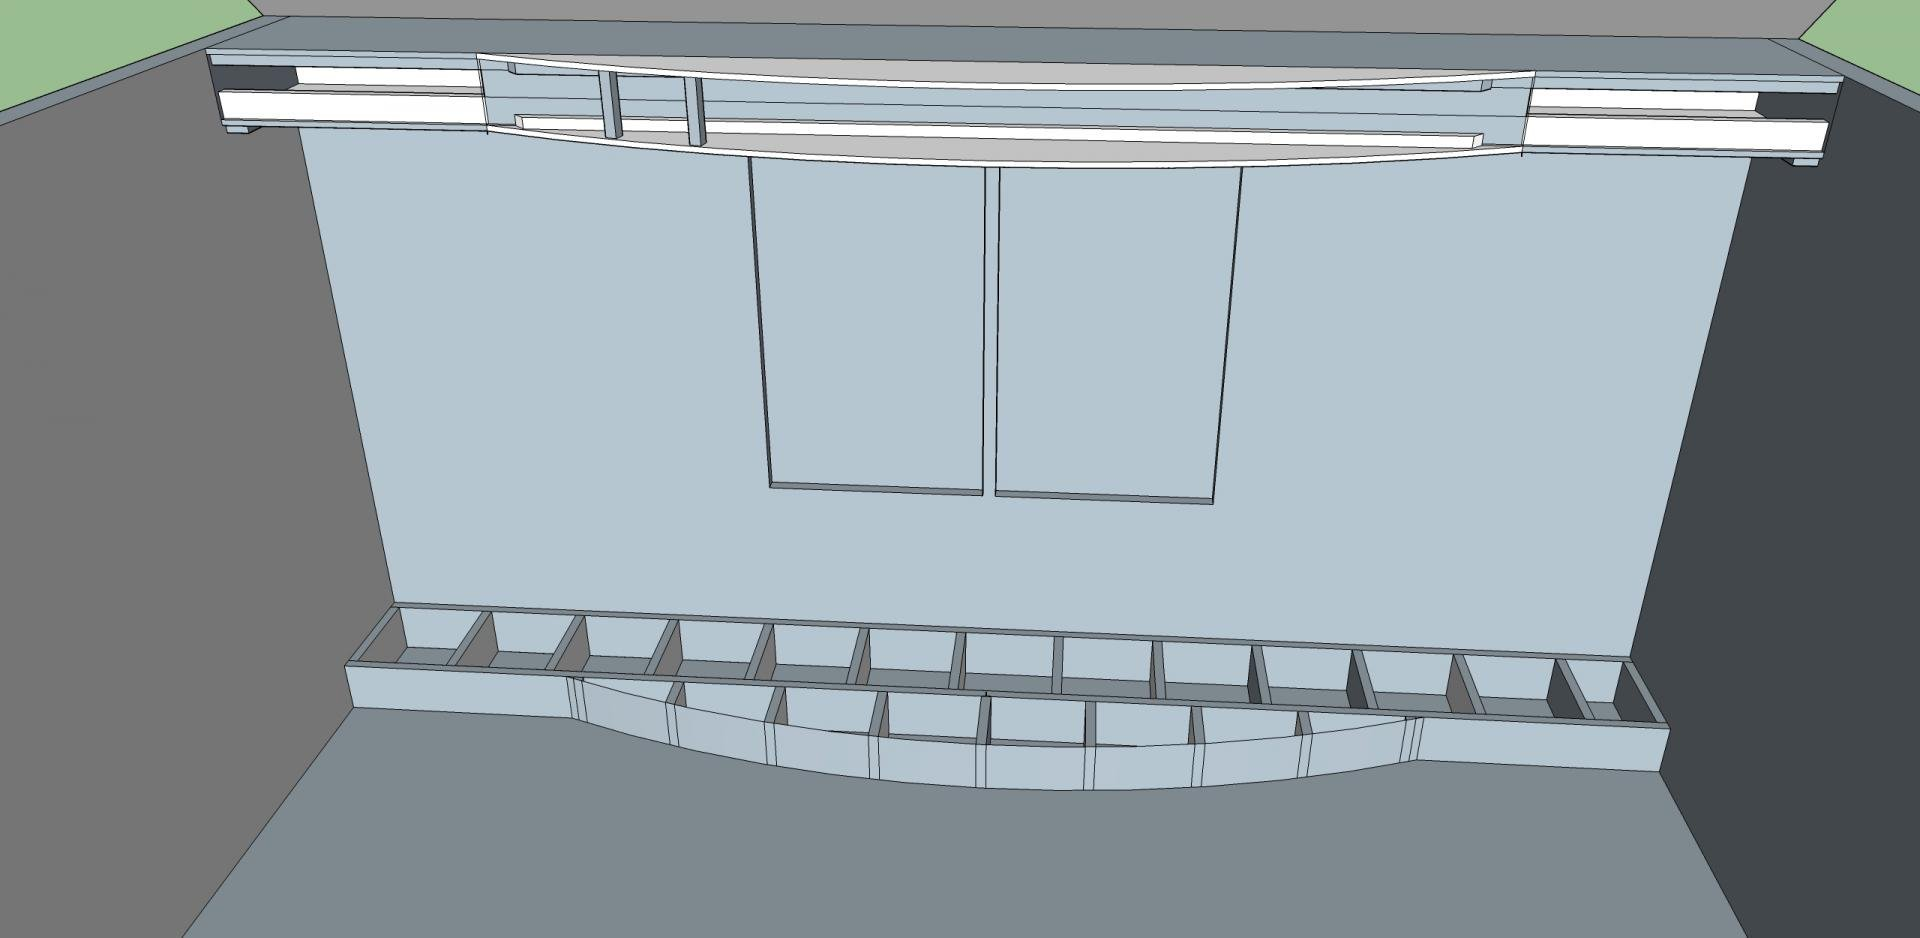 Click image for larger version  Name:Stage build.jpg Views:46 Size:92.5 KB ID:1760057